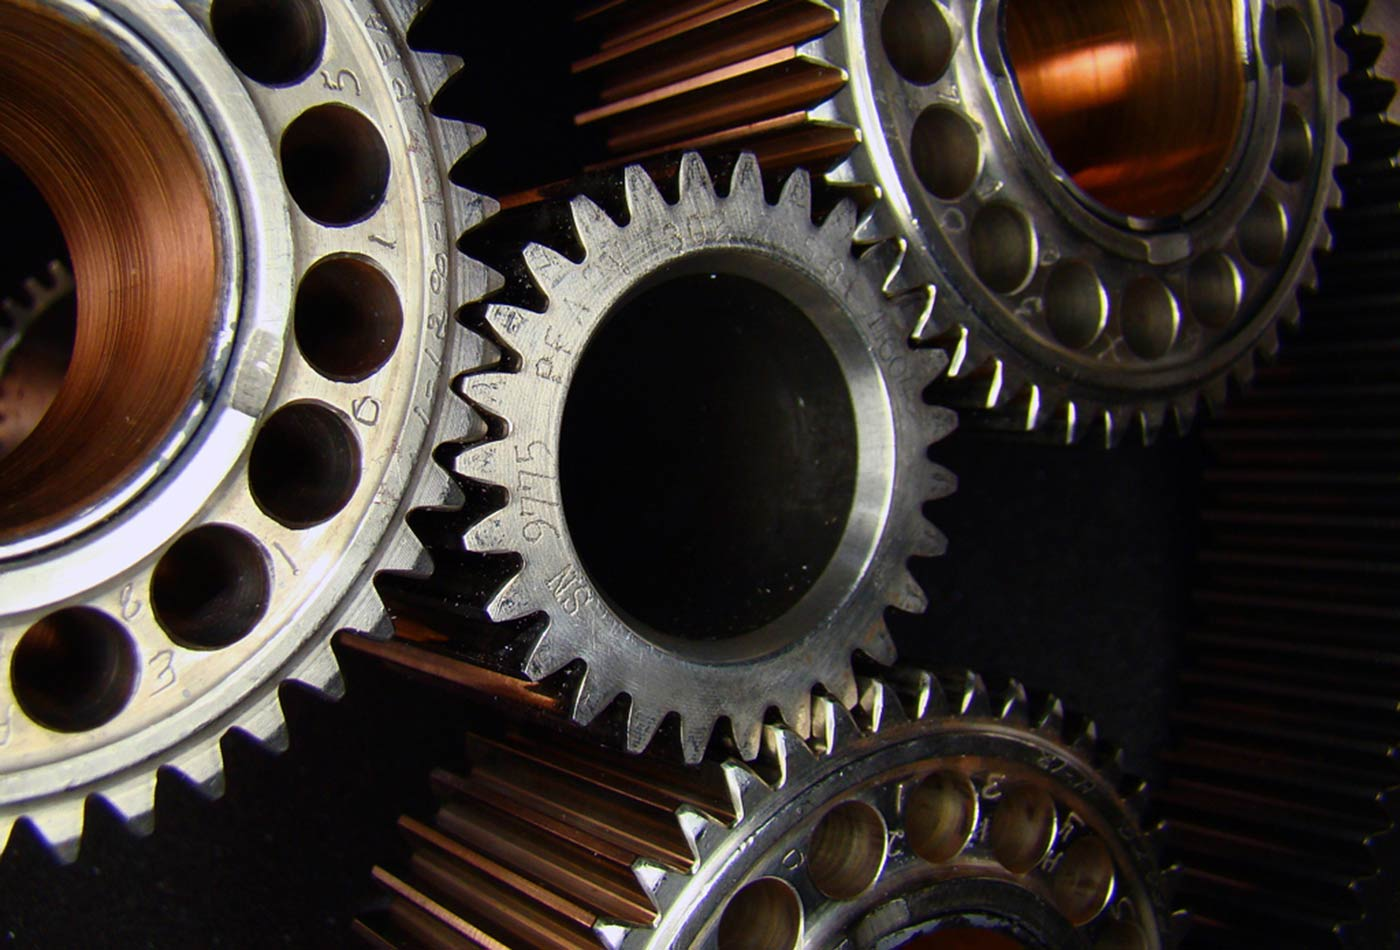 Reduction gears.